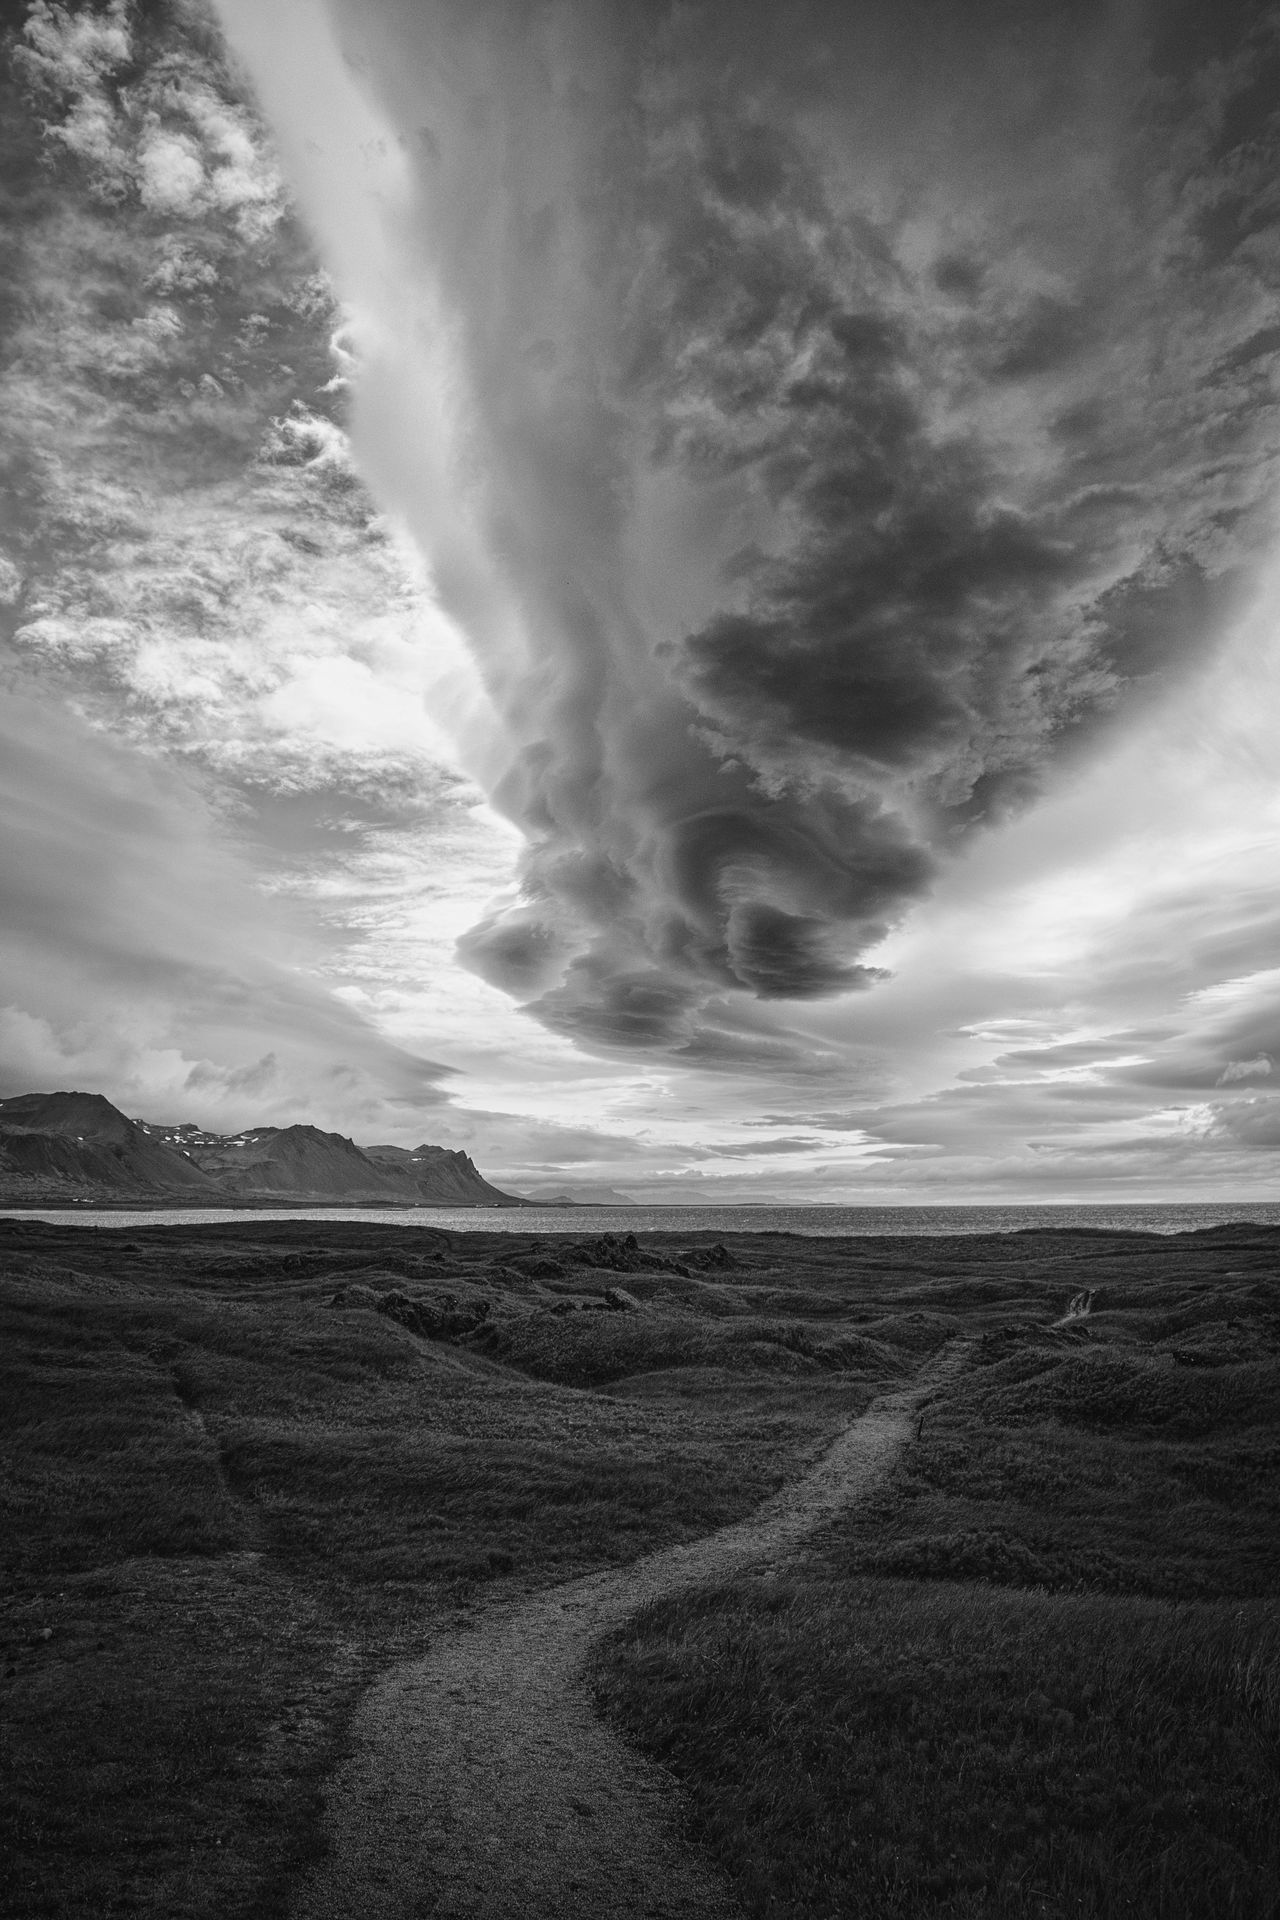 neither her nor there Adventure Beauty In Nature Black And White Photography Cloud - Sky Day Explore The World Iceland Landscape Nature No People Outdoors Paths Poetic Photography Scenics Sky Storm Cloud EyeEmNewHere